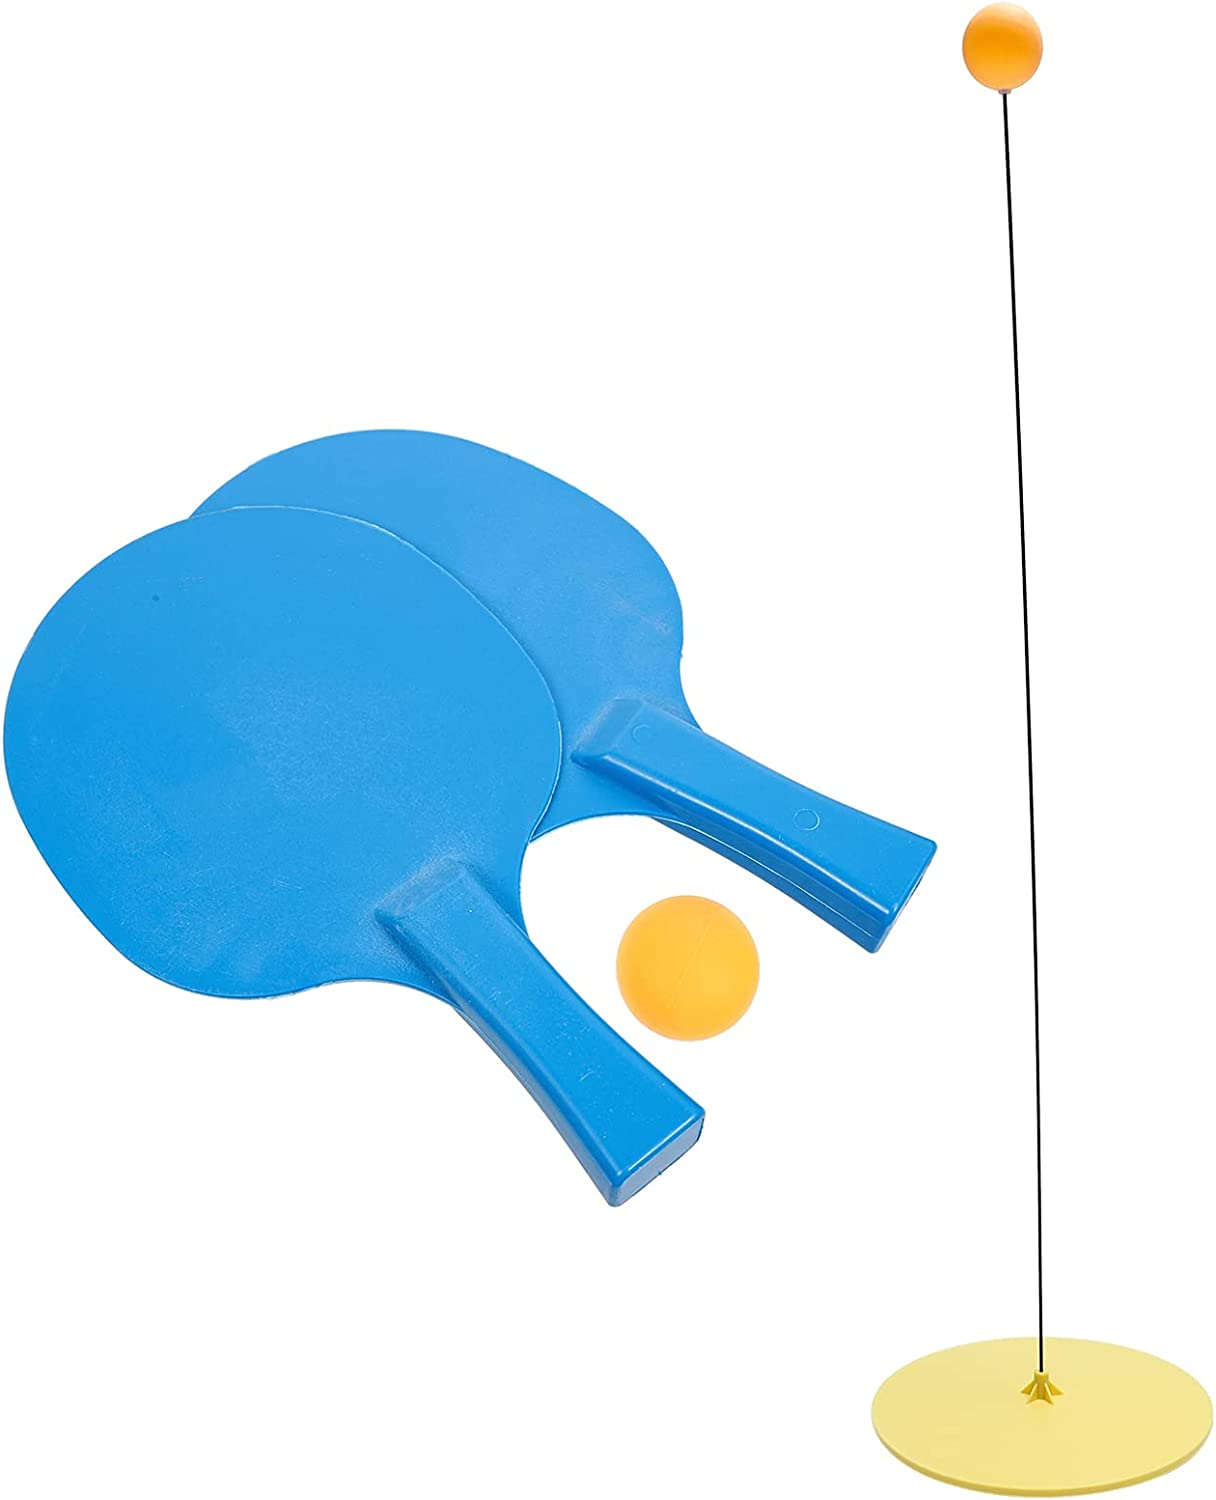 Amosfun 1 Set Pong Trainer Table Tennis Elastic Training Popular shop is the lowest price challenge Sh New life Soft